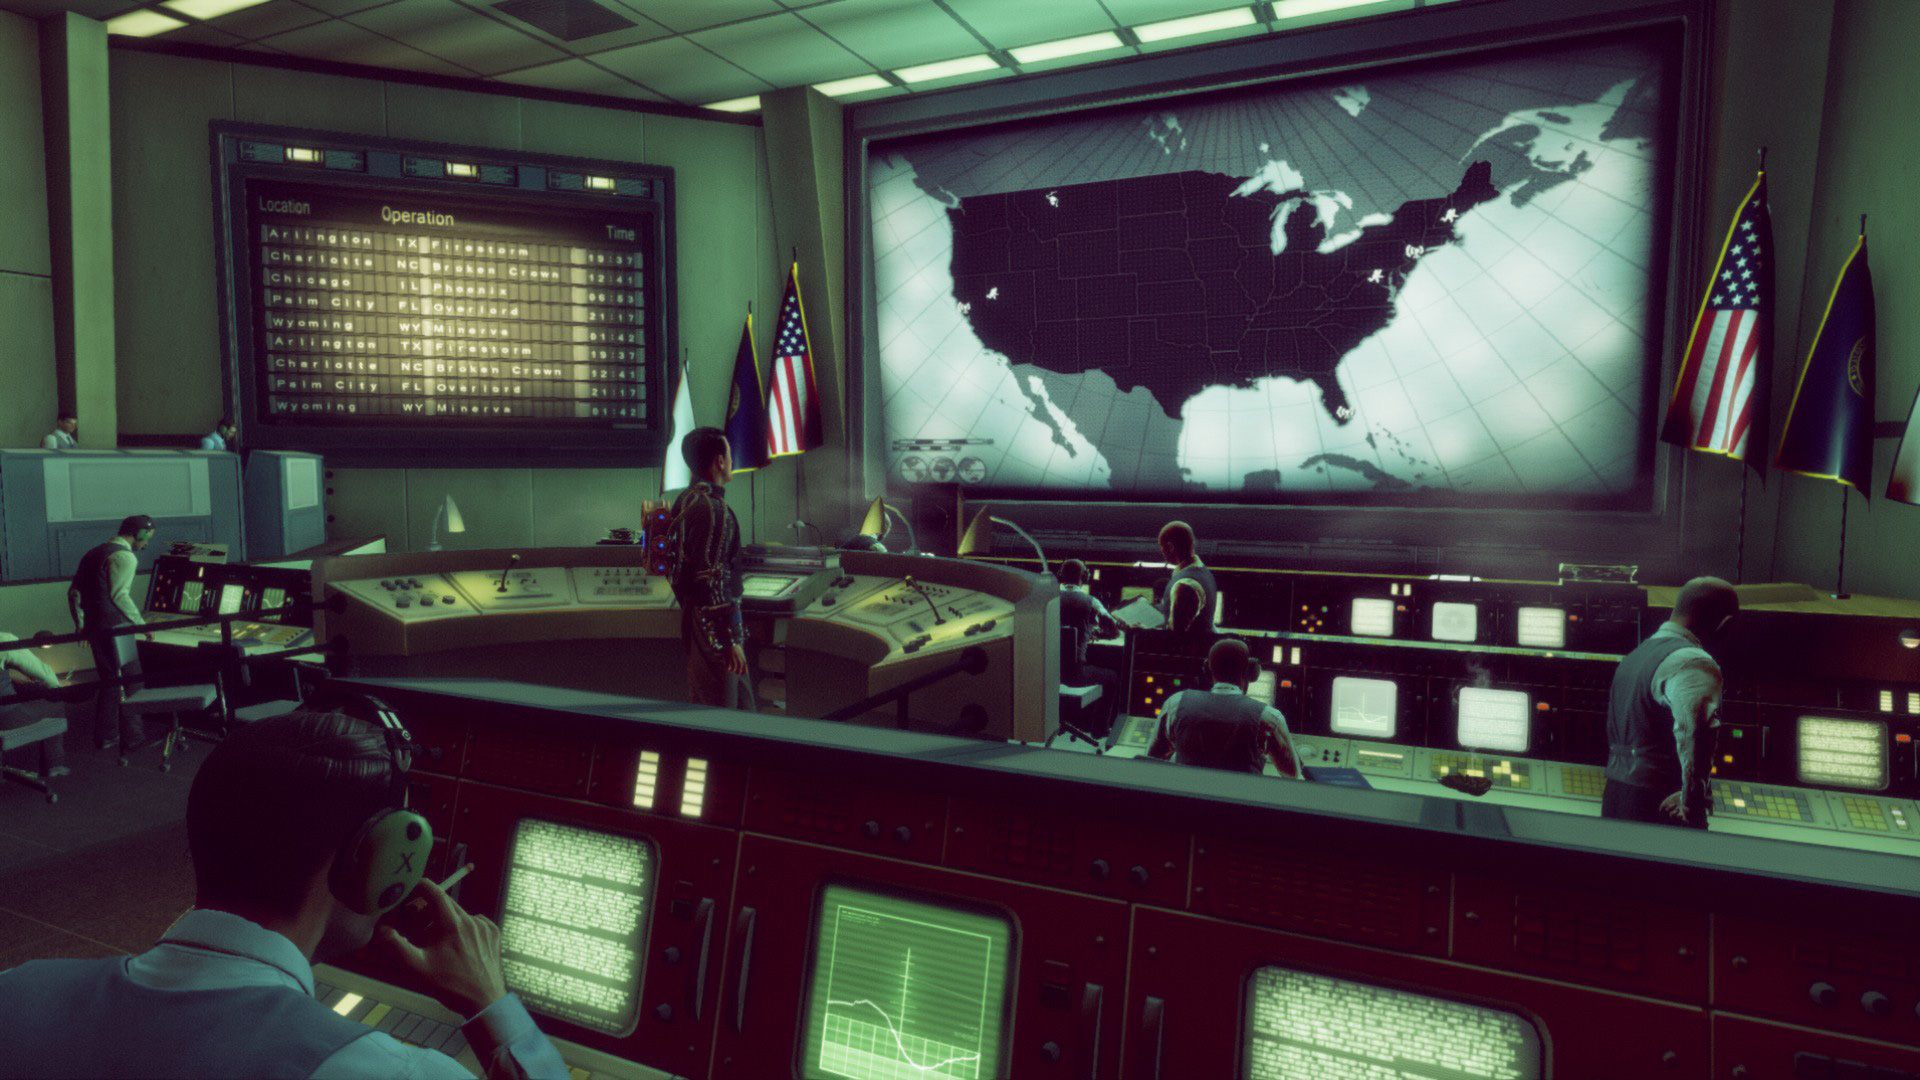 The bureau xcom declassified review matt brett for Bureau xcom declassified weapons